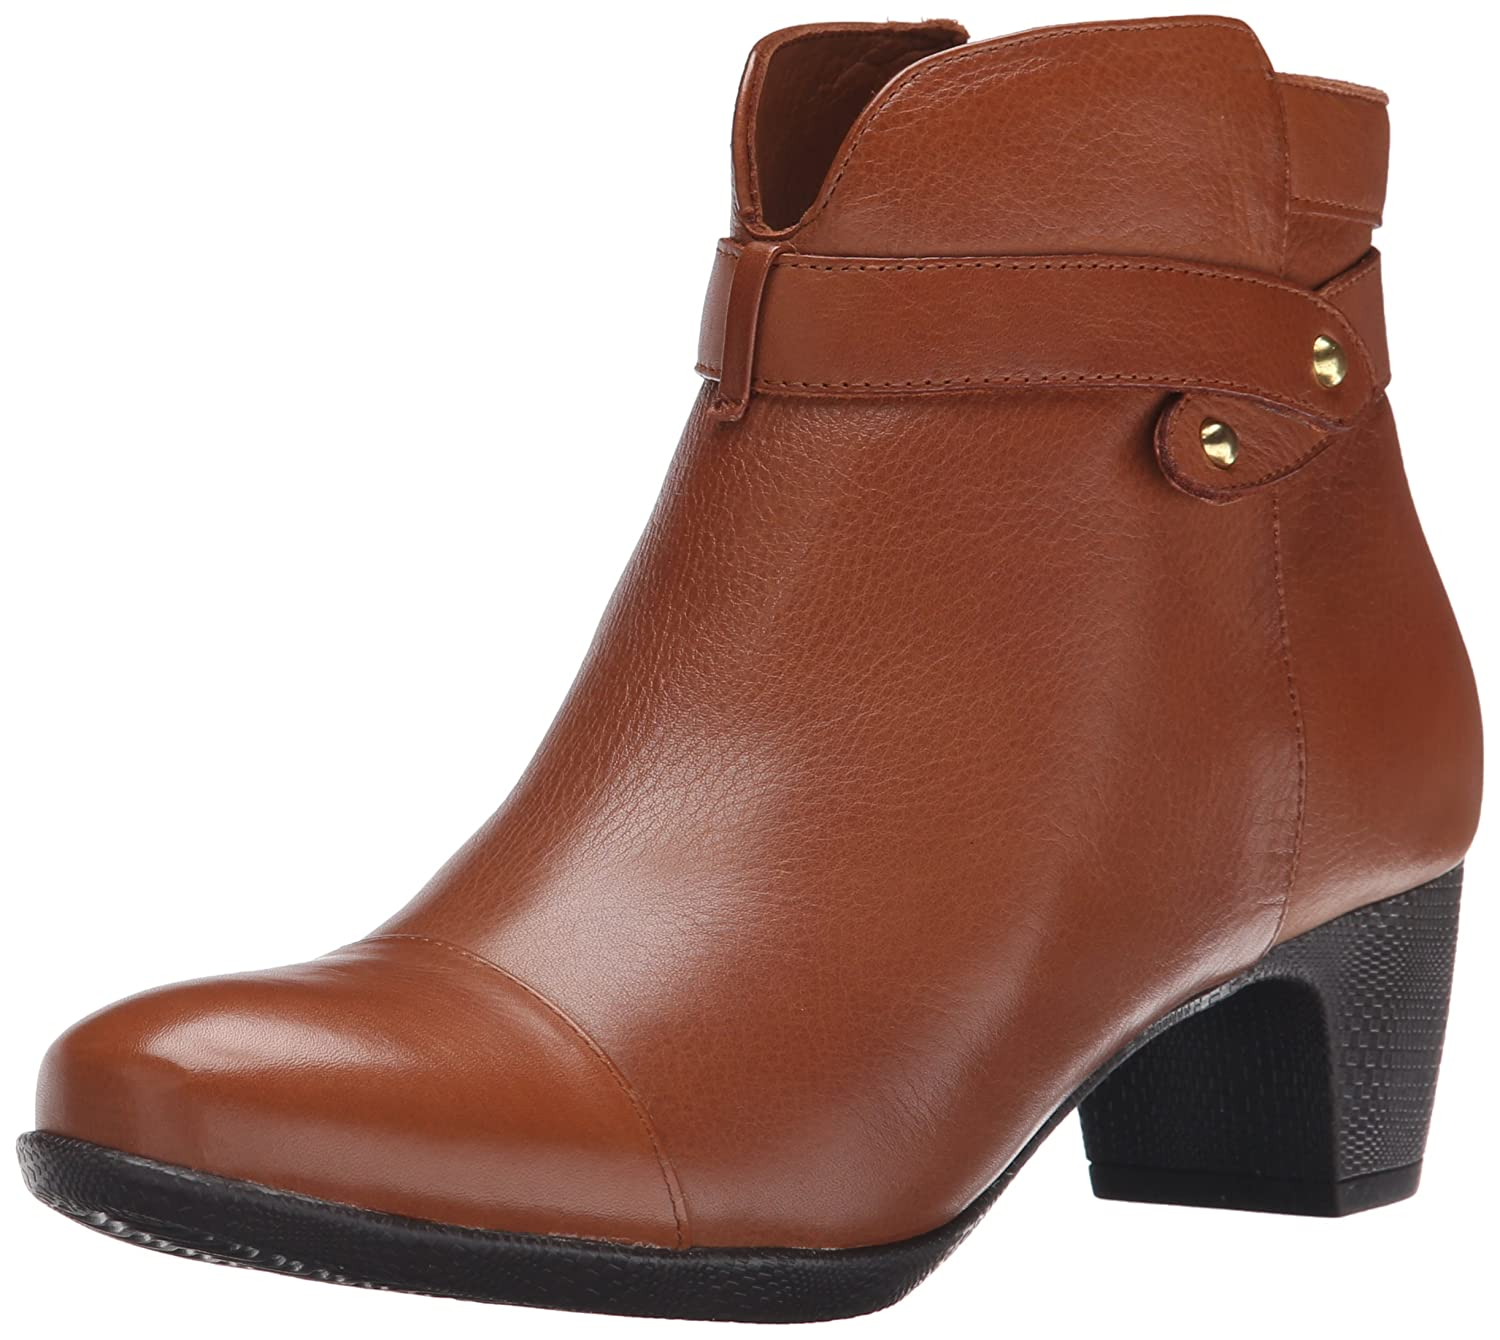 SoftWalk Women's Ivanhoe Harness Boot B00HQLNIDC 8 N US|Cognac